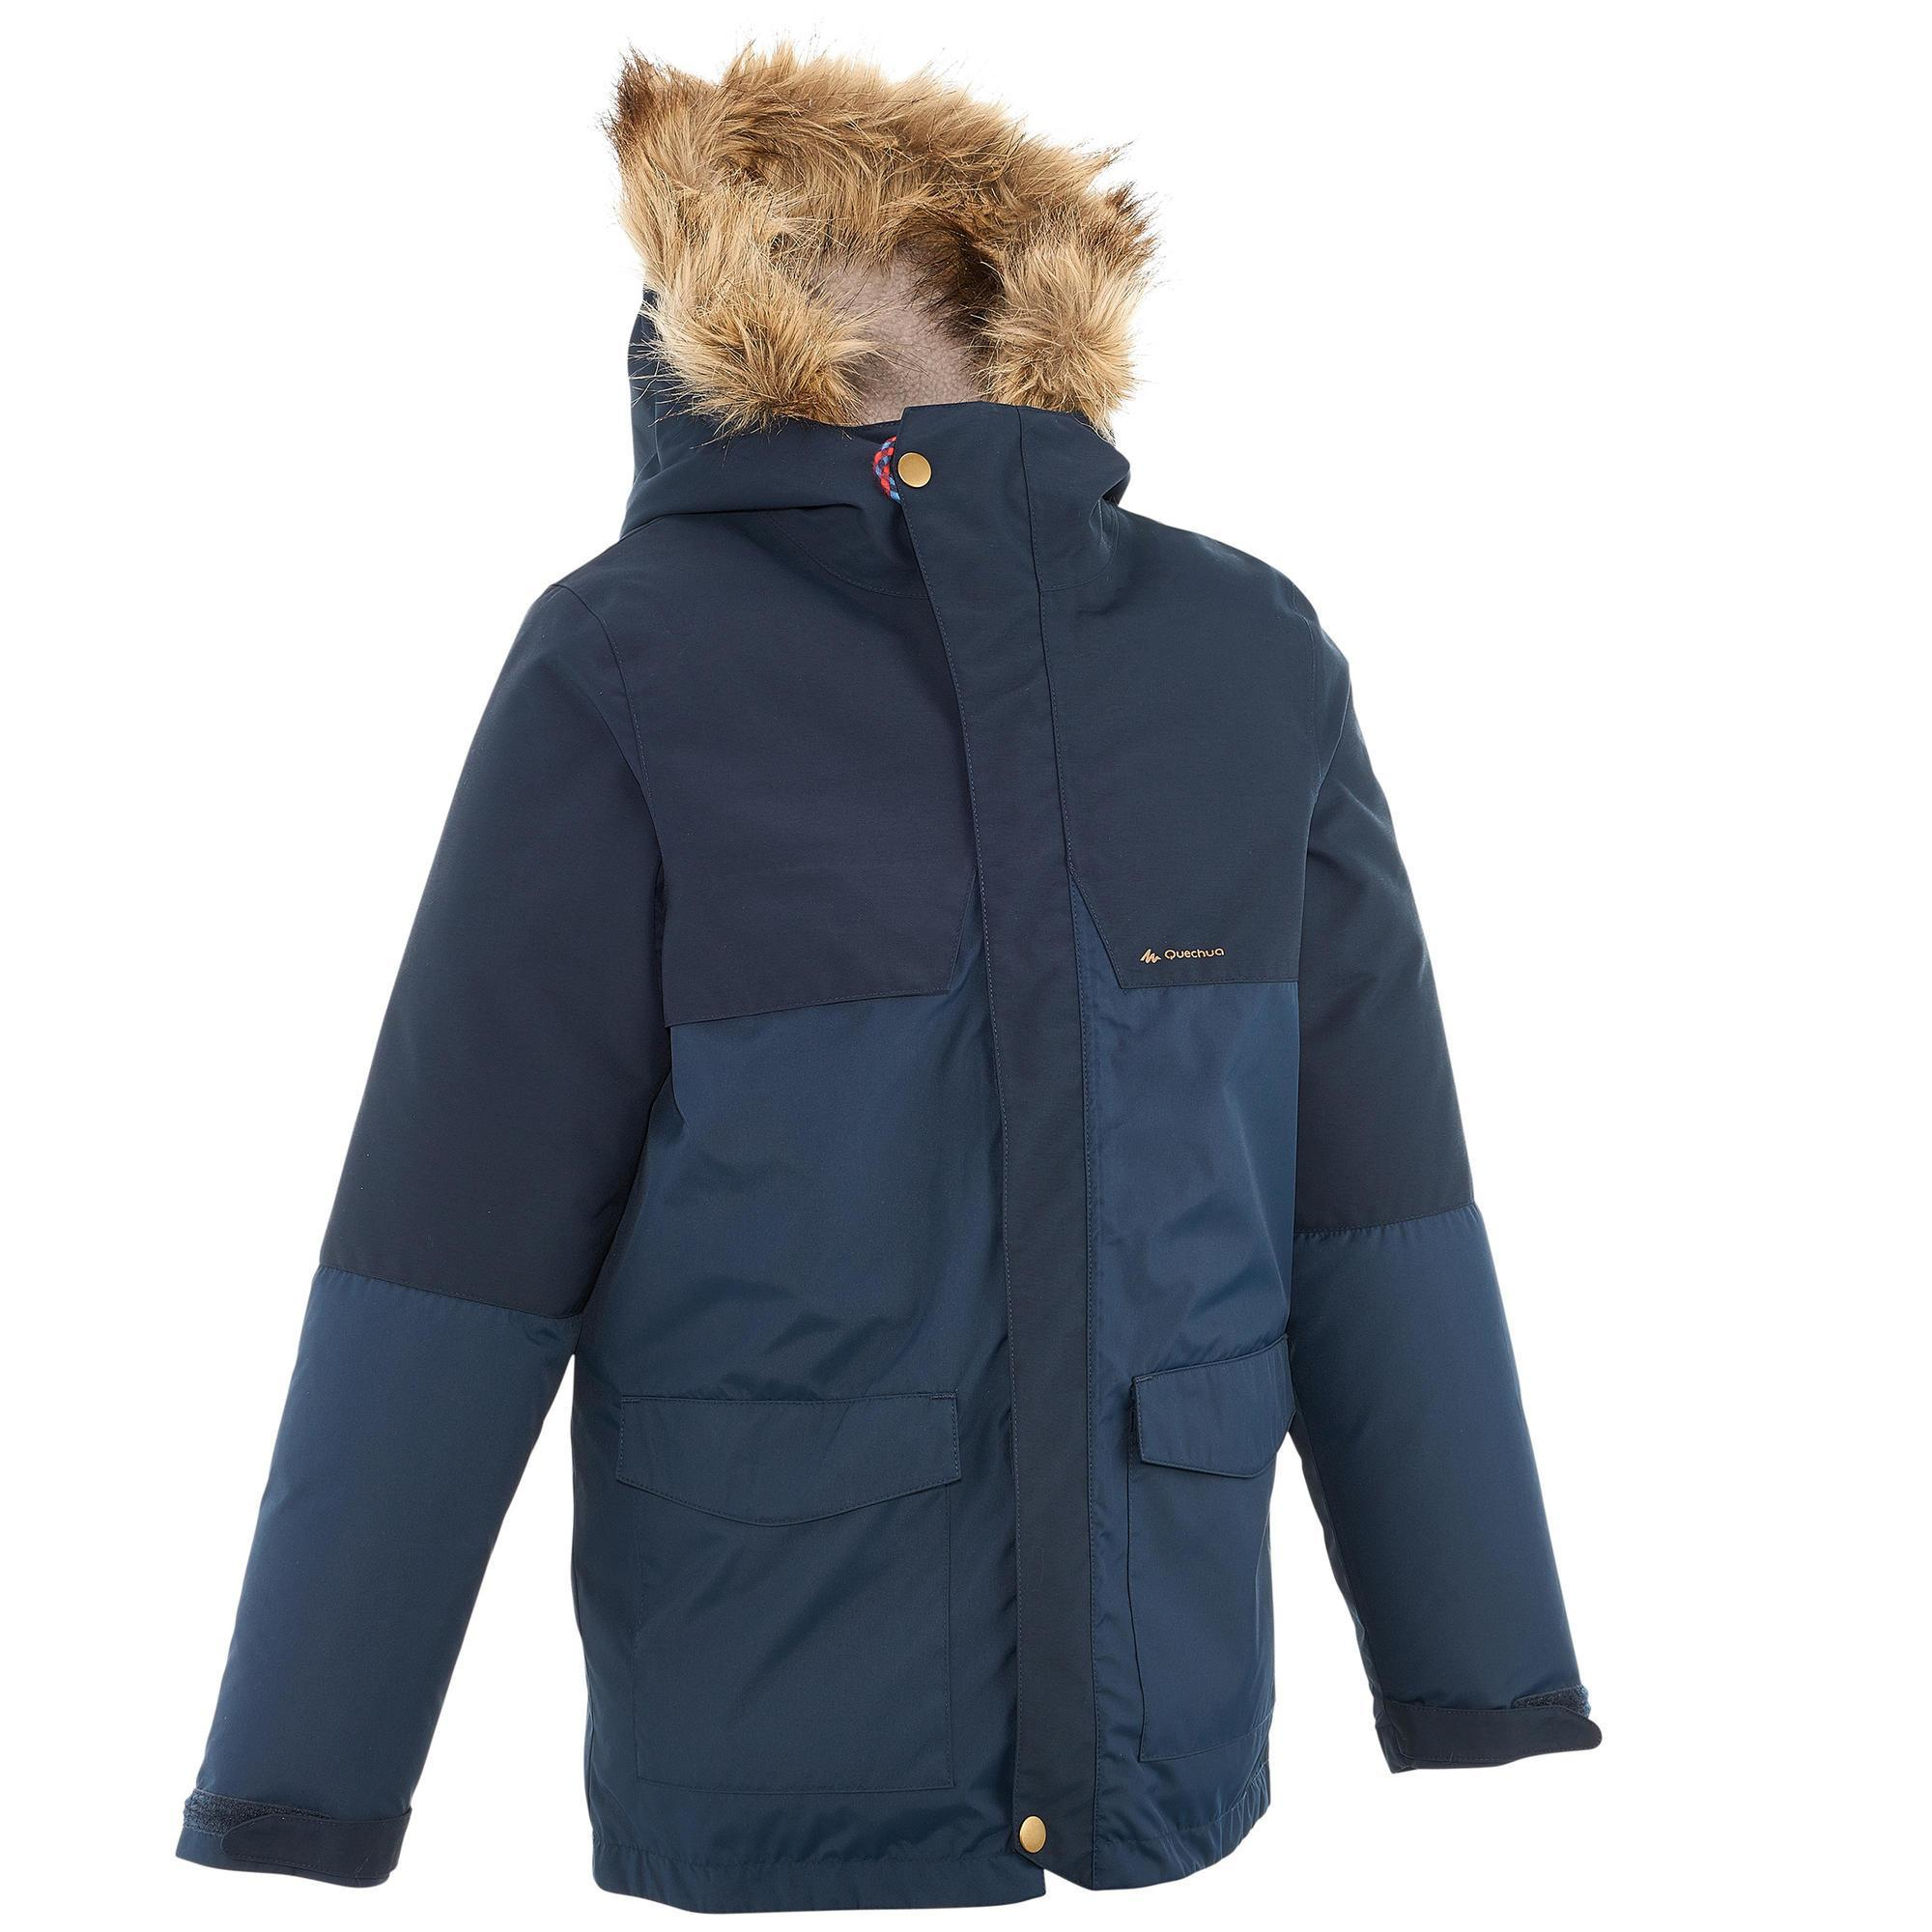 XX Warm Boys' Hiking Warm Waterproof Jacket - Navy | Quechua